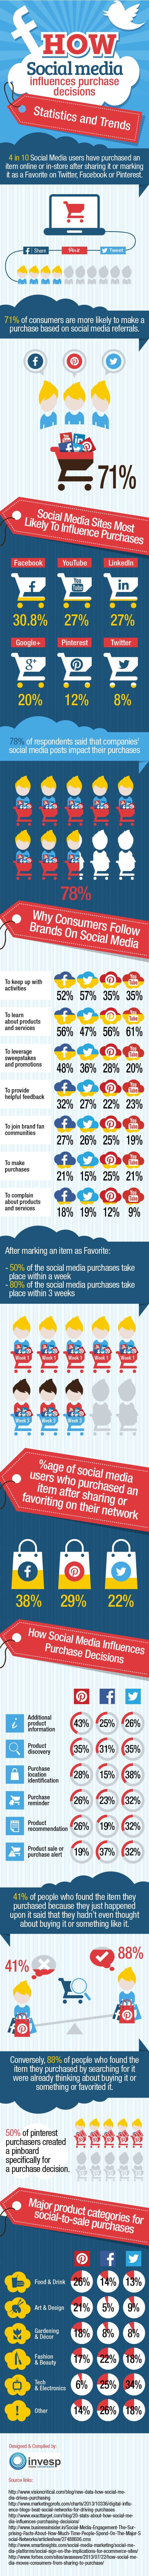 Social media purchase decisions - Thai SME Research